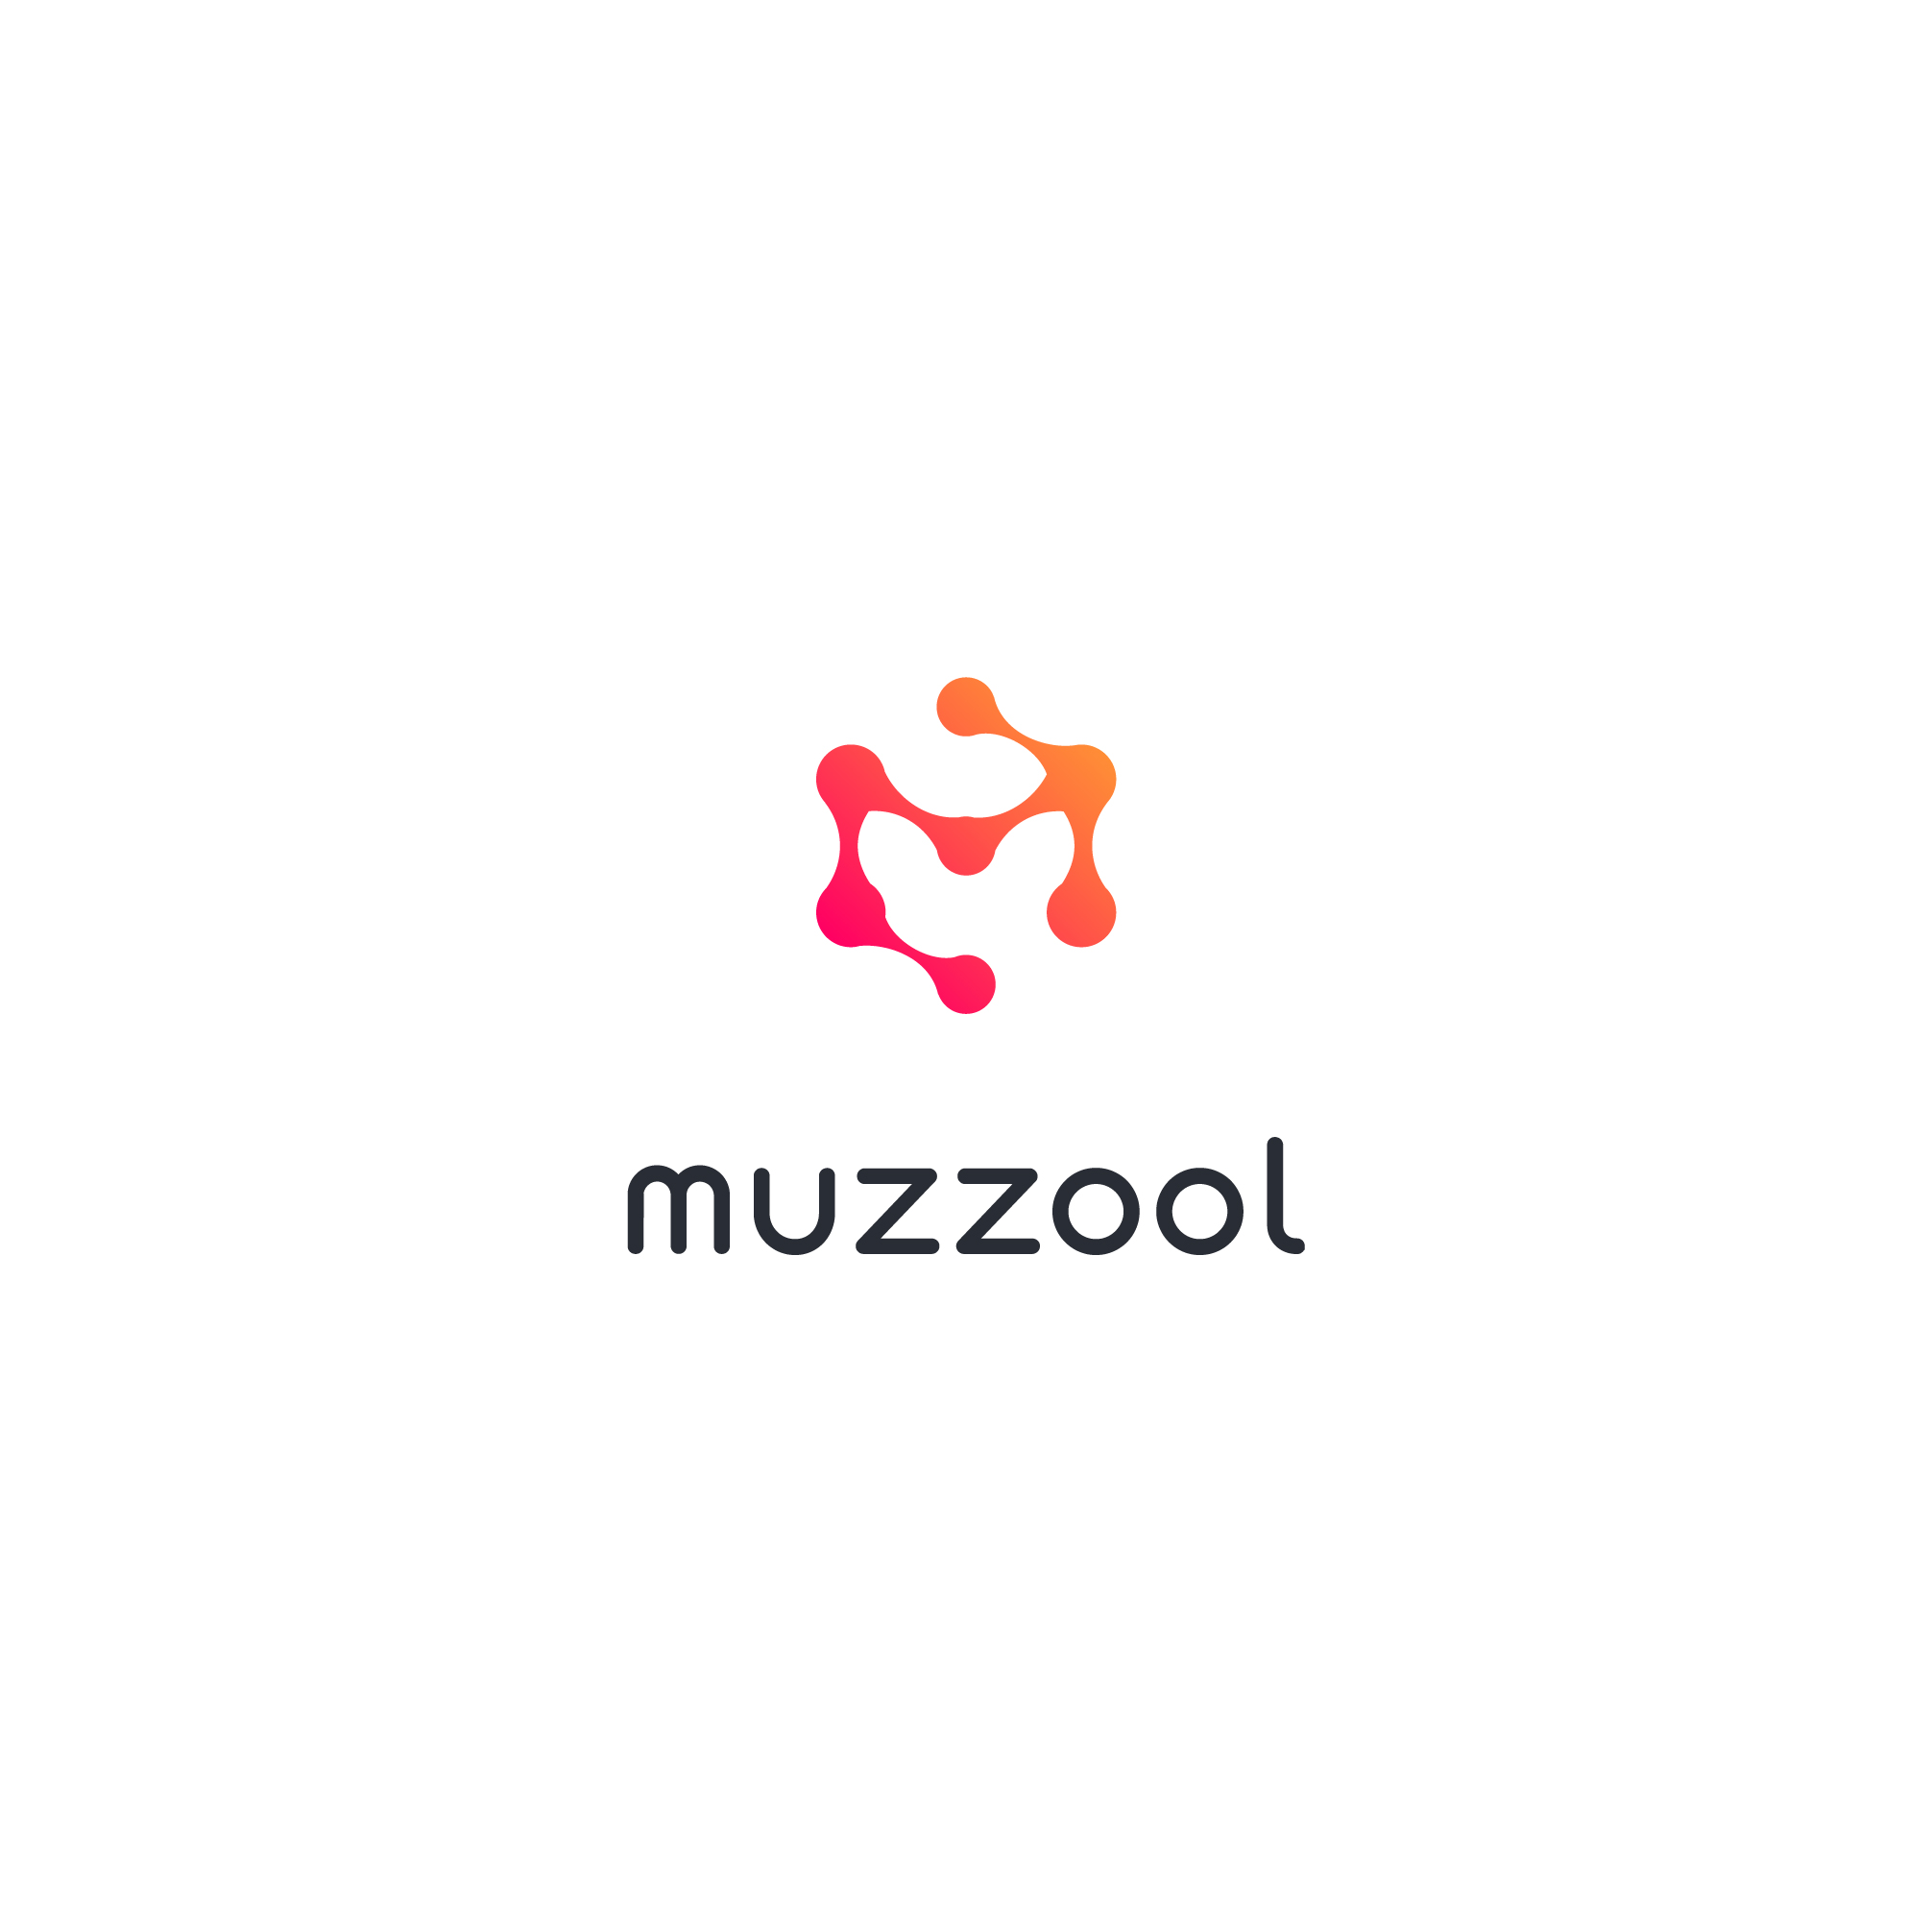 Muzzool logo - main